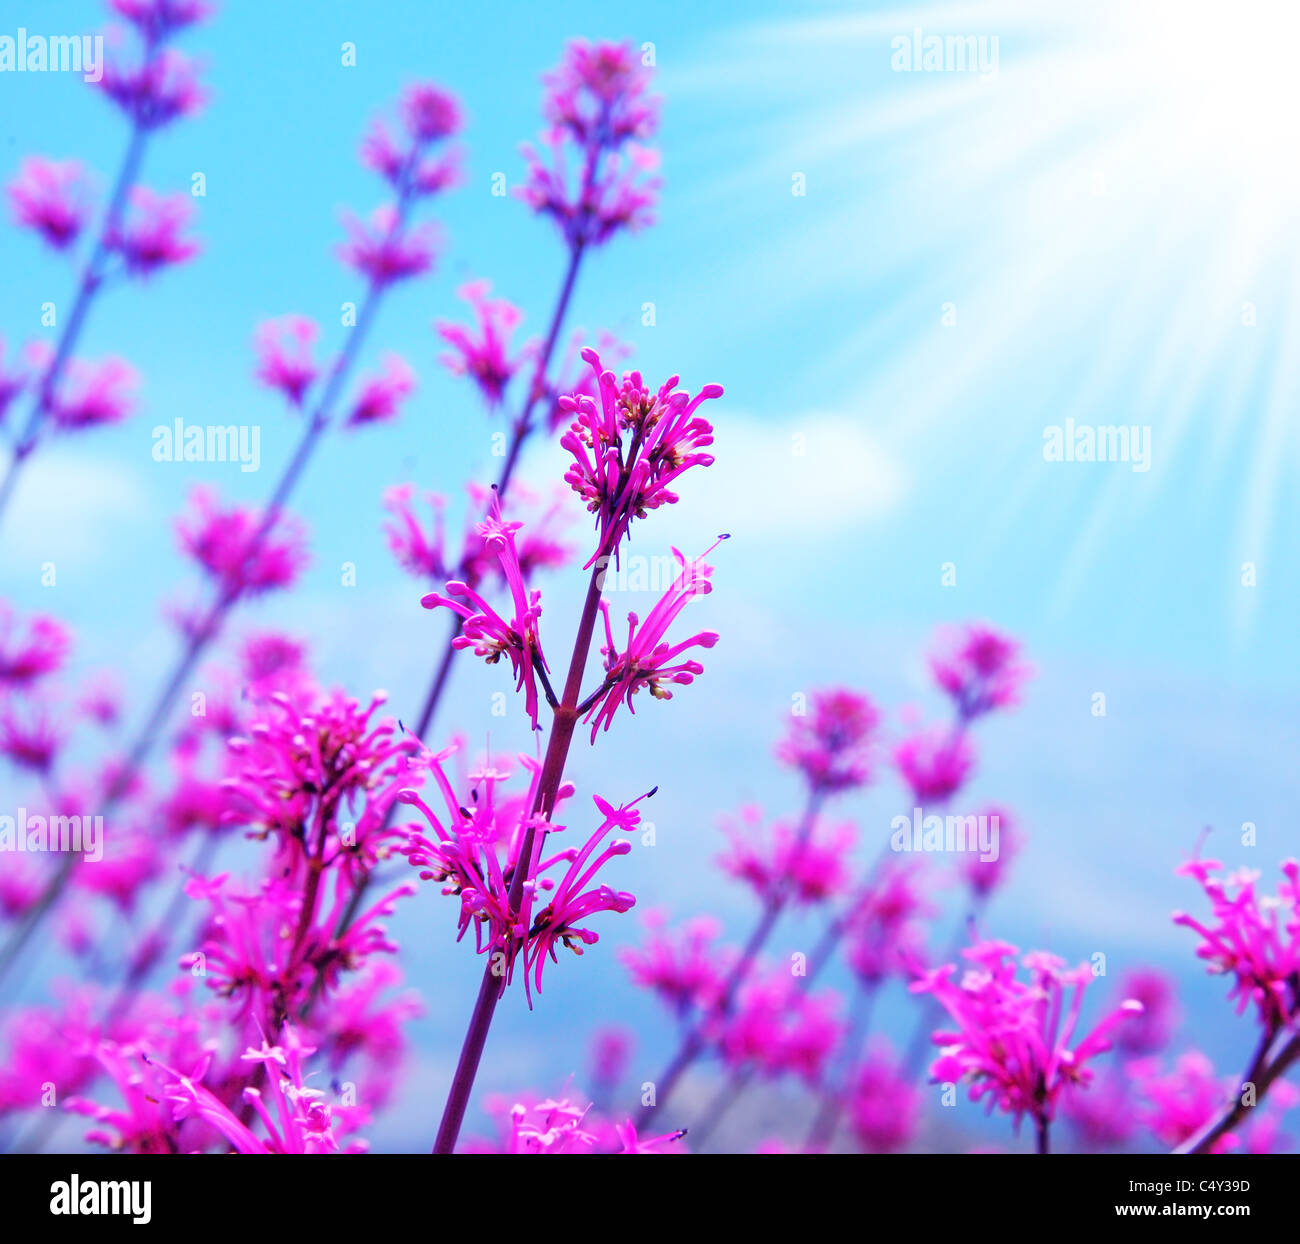 Pink spring flower field abstract background with blue sky and pink spring flower field abstract background with blue sky and sunlight mightylinksfo